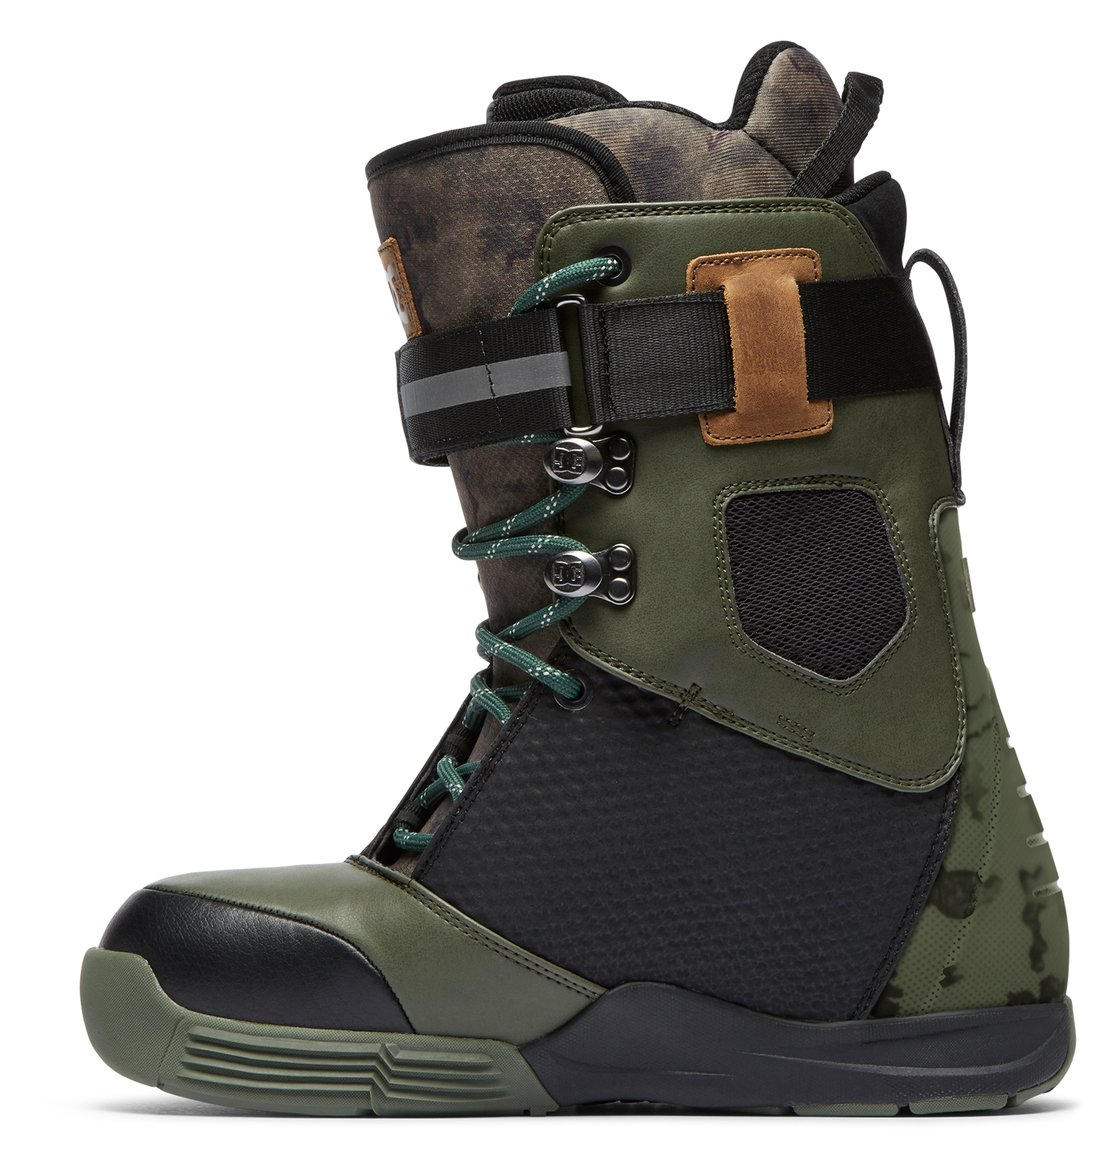 DC-Shoes-Tucknee-Lace-Up-Snowboard-Boots-for-Men-Maenner